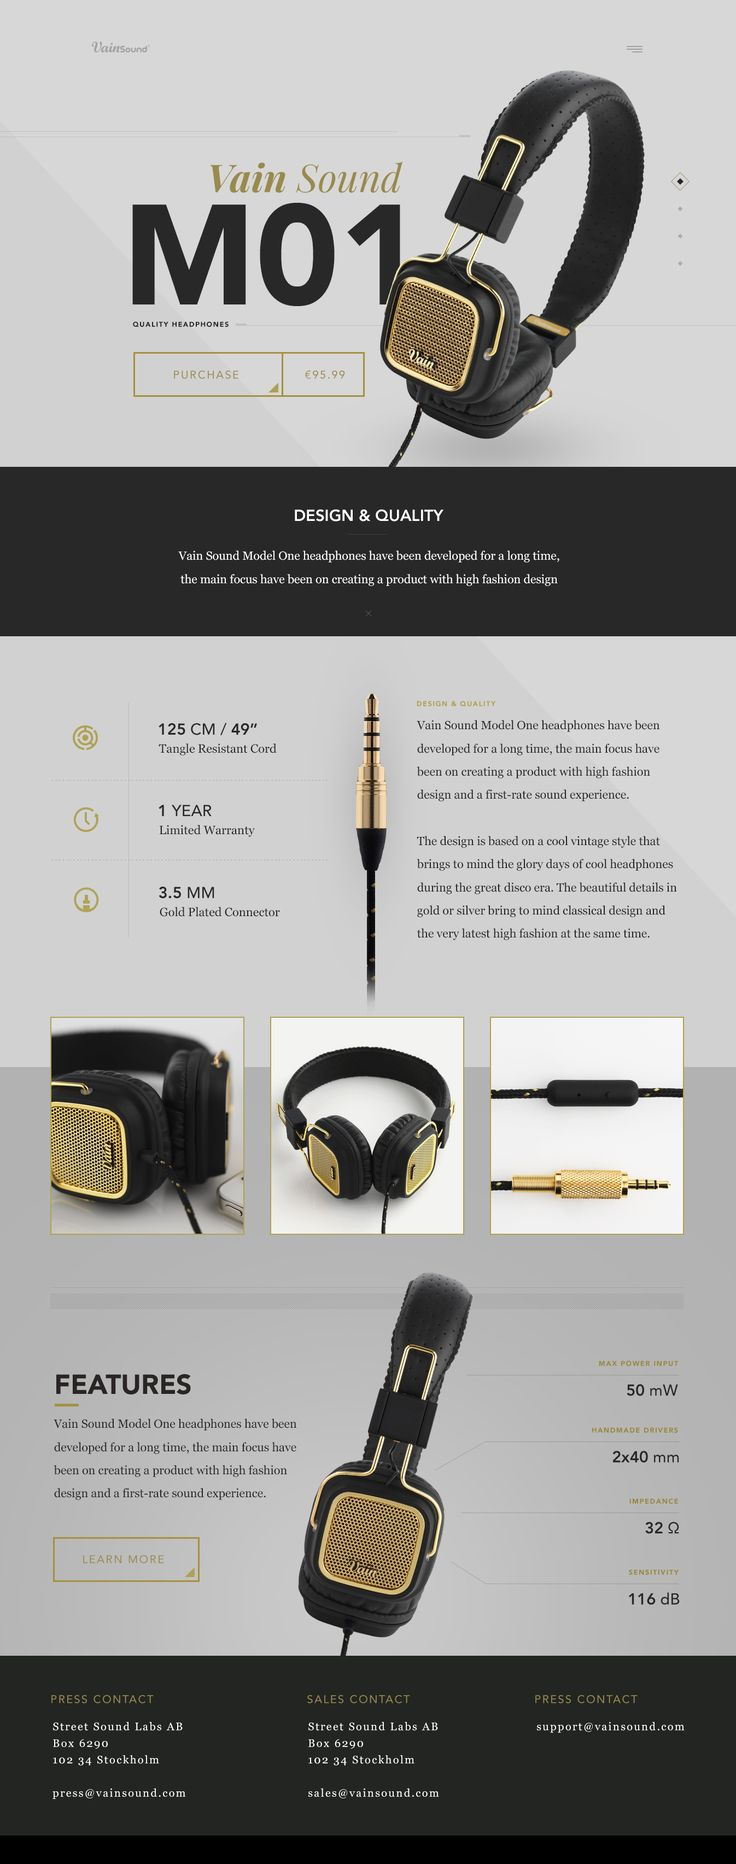 Web Design Inspiration: Product Pages